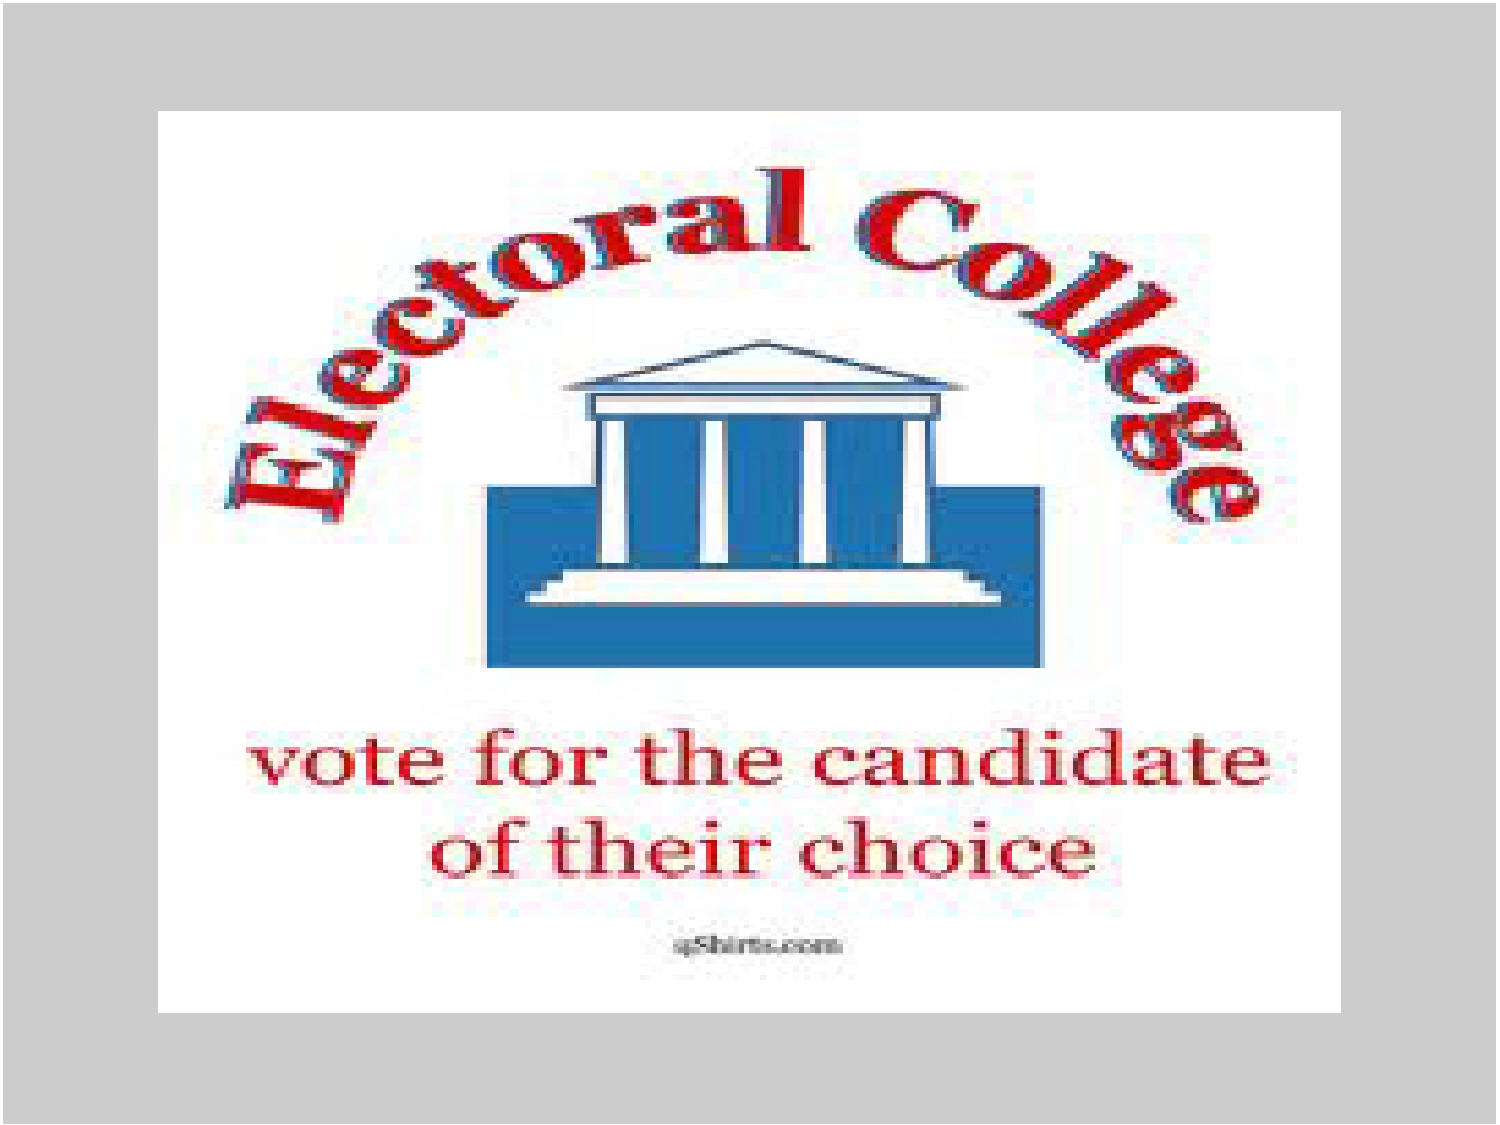 essays on the electoral college system An essay the electoral college system claims that the popularity of their vote may not be reflected in the outcome of who becomes the president.